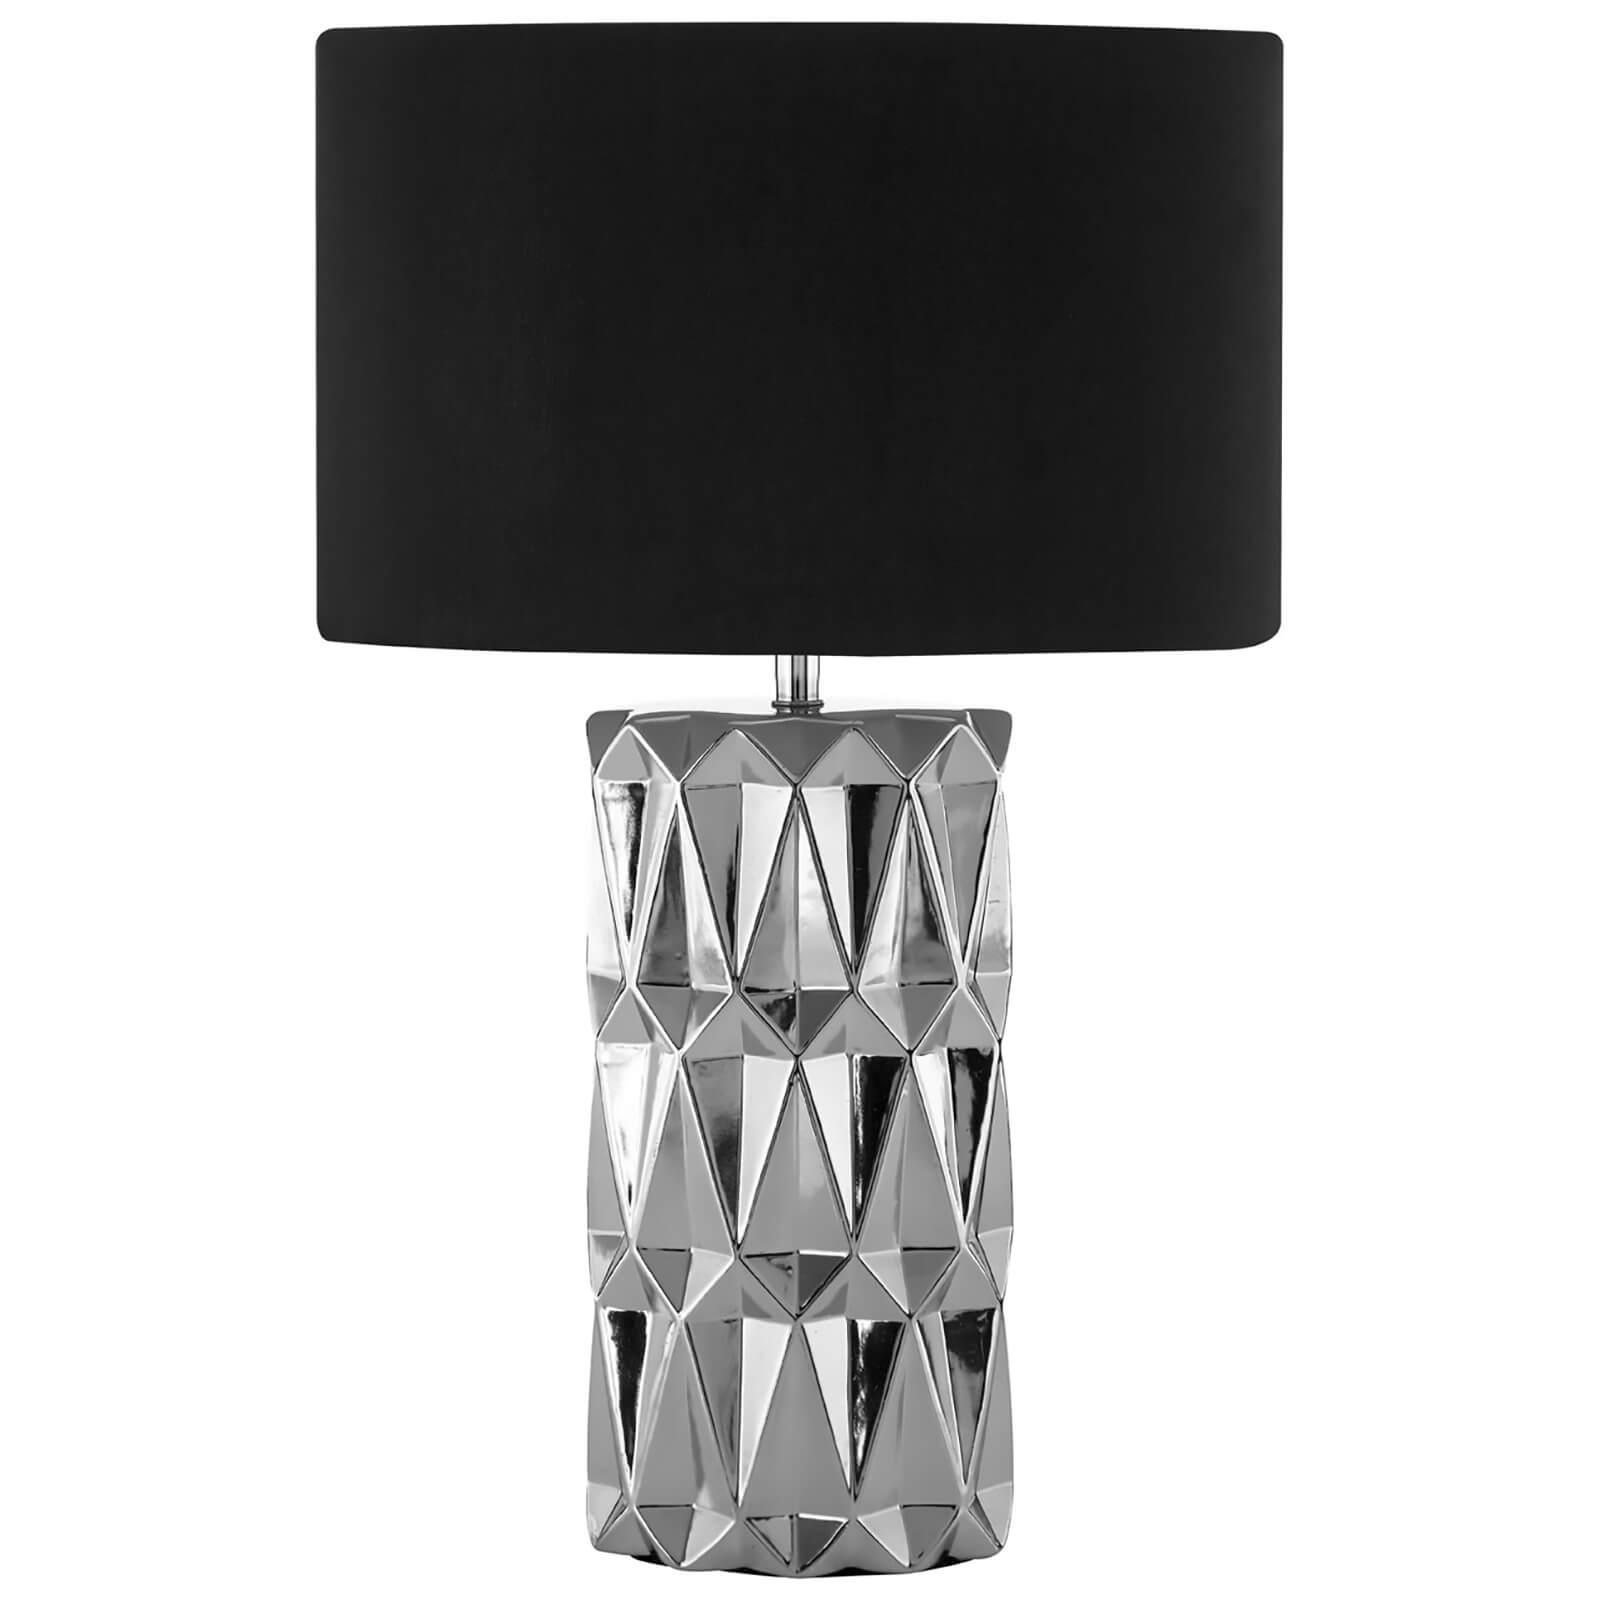 Fifty Five South Jaxon Table Lamp - Silver Ceramic/Black